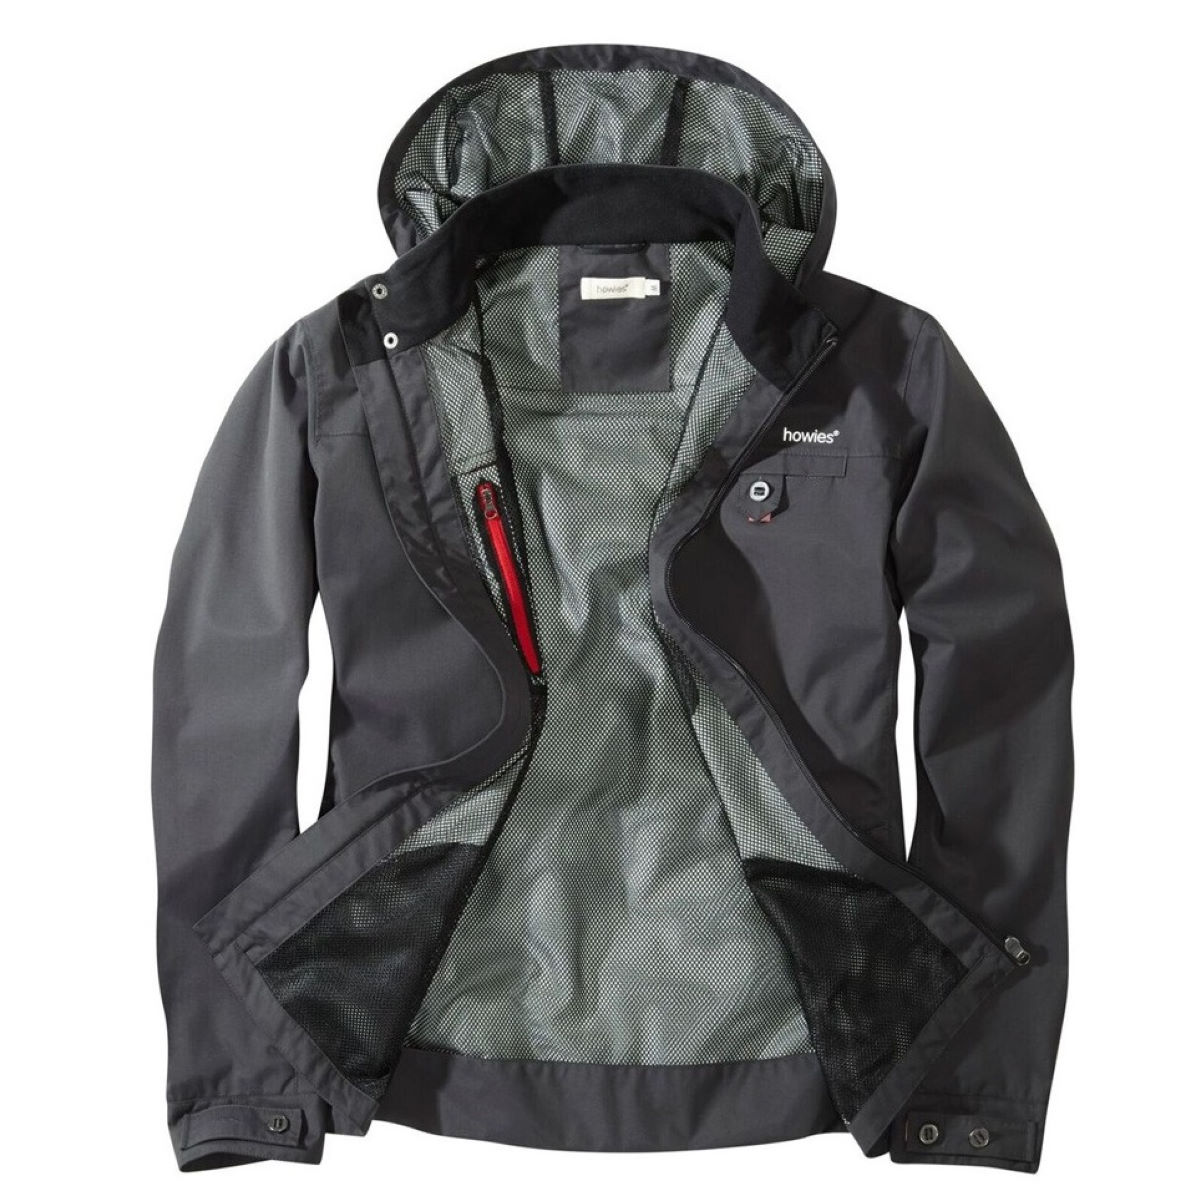 Chaqueta howies Courier Waterproof Urban Active - Chaquetas impermeables